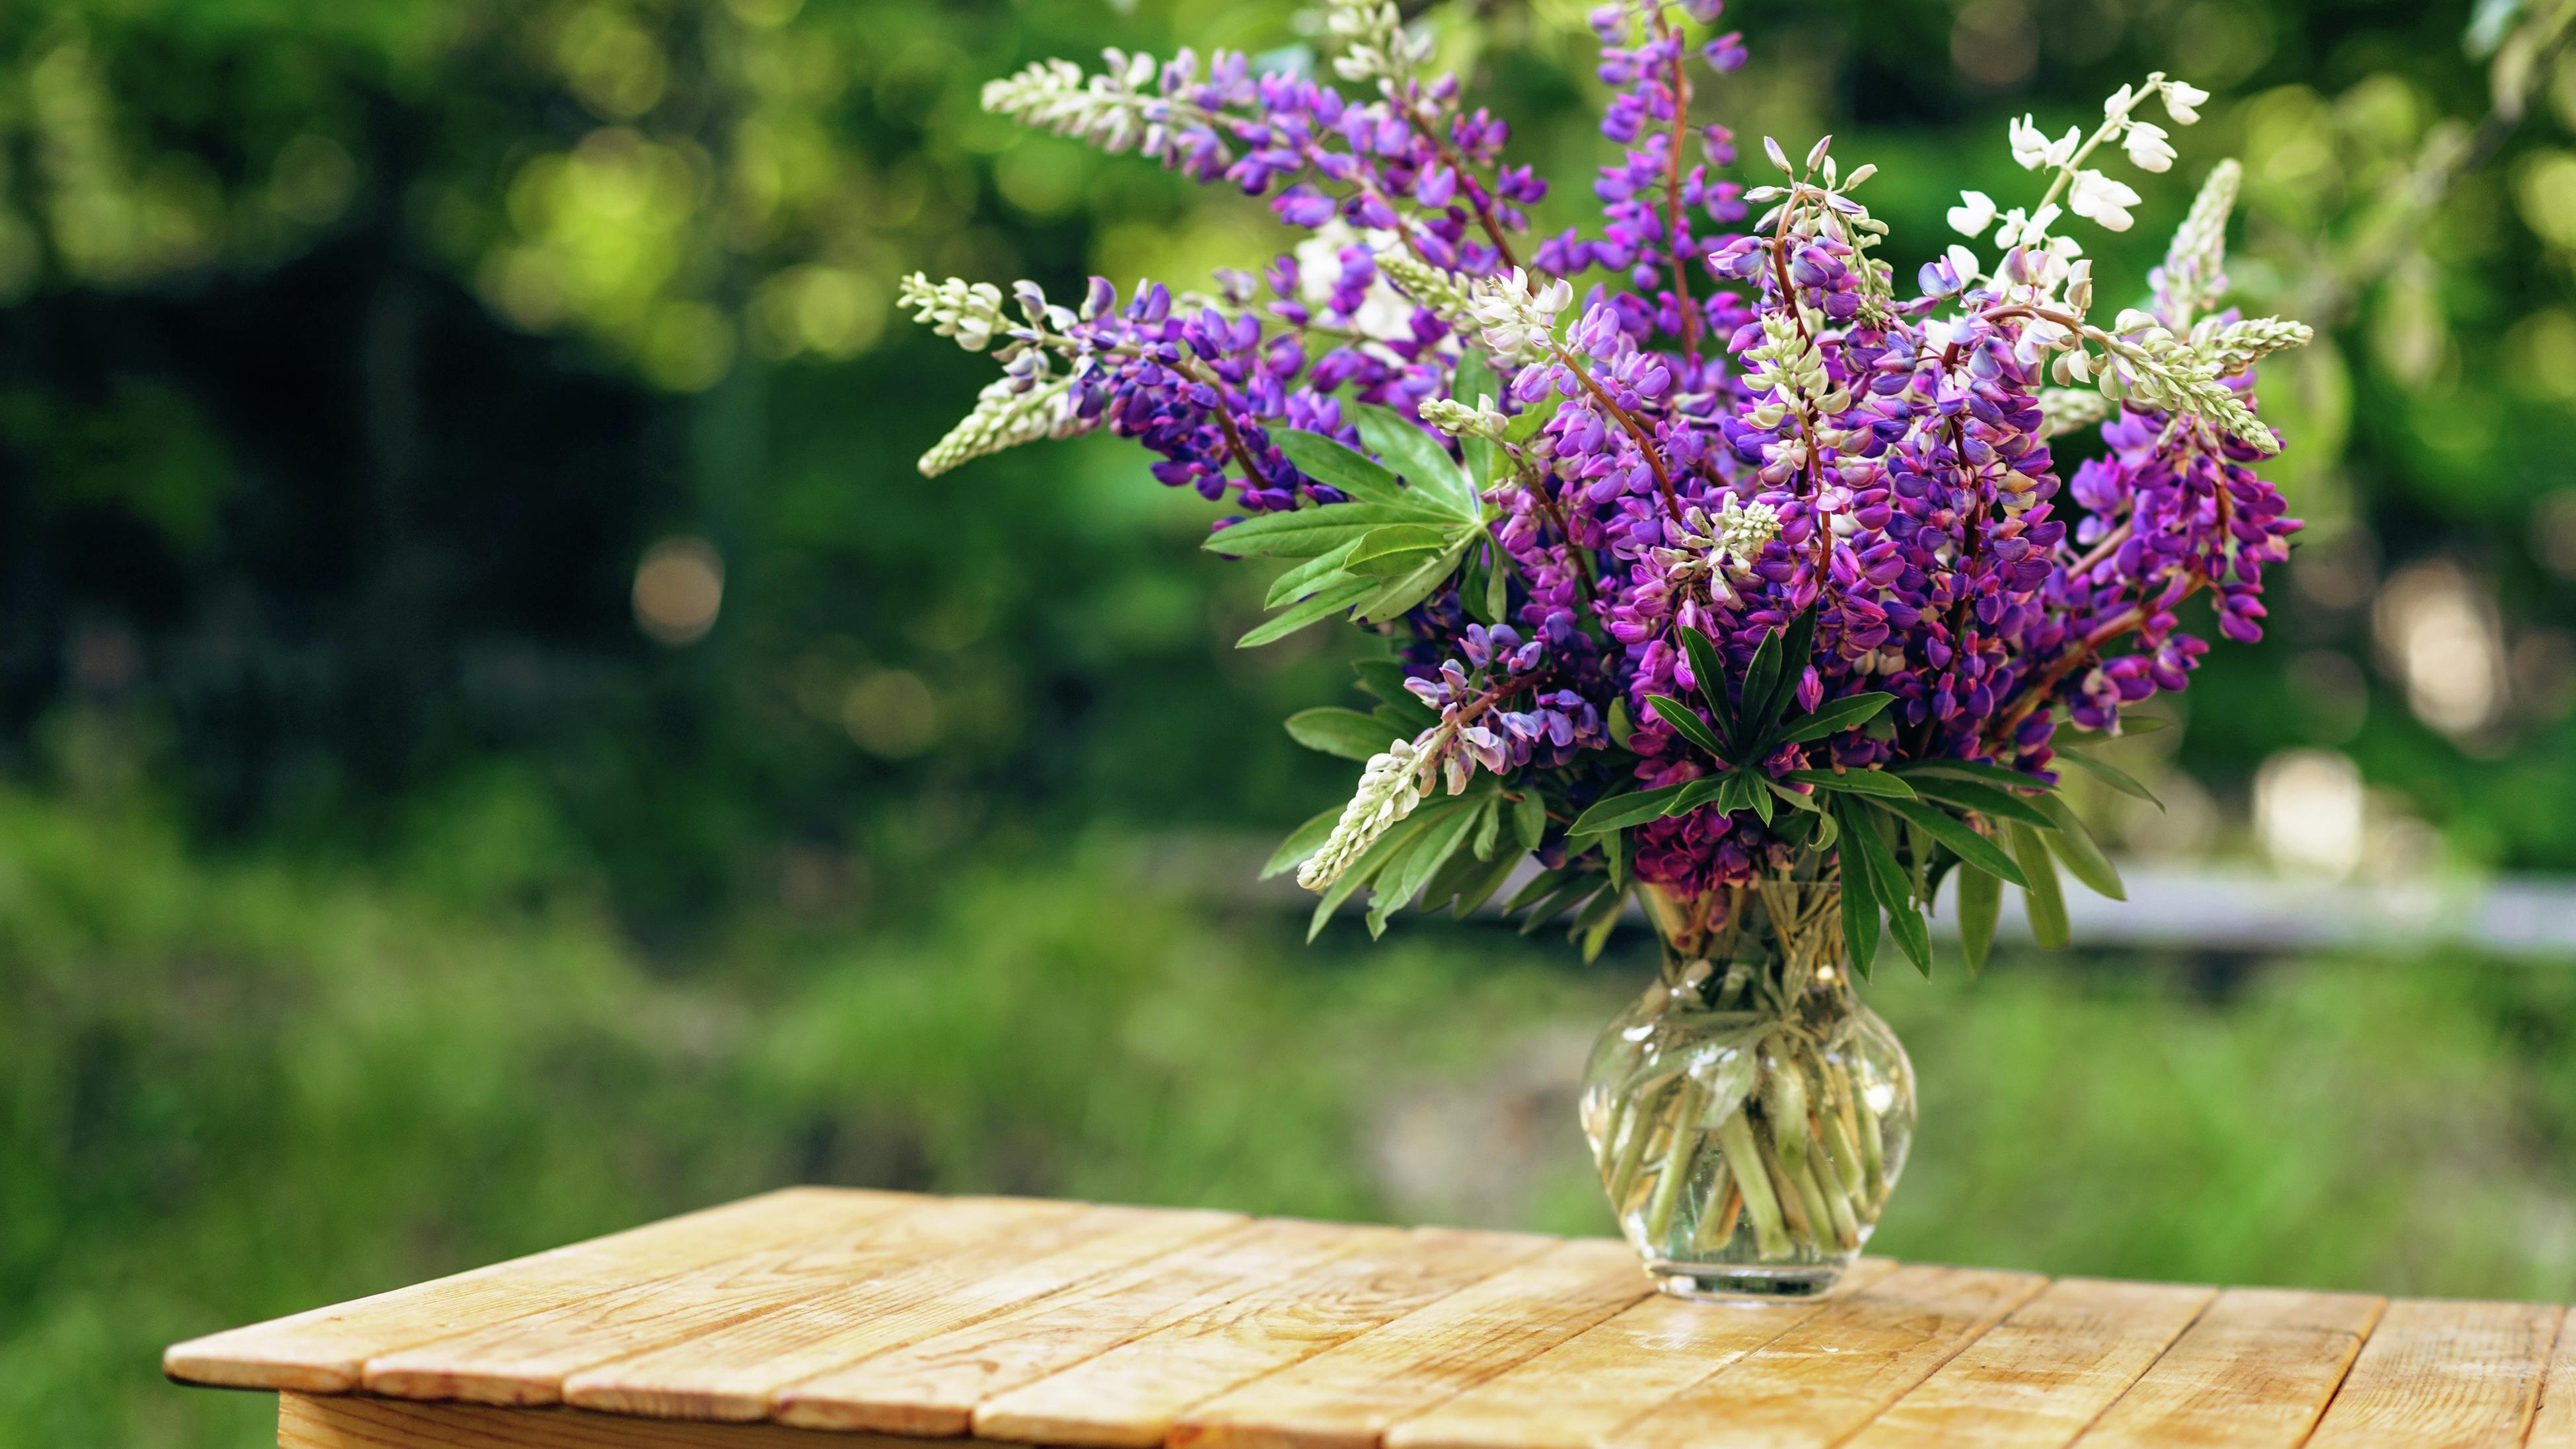 A vase of purple lupin flowers on a wooden outdoor table